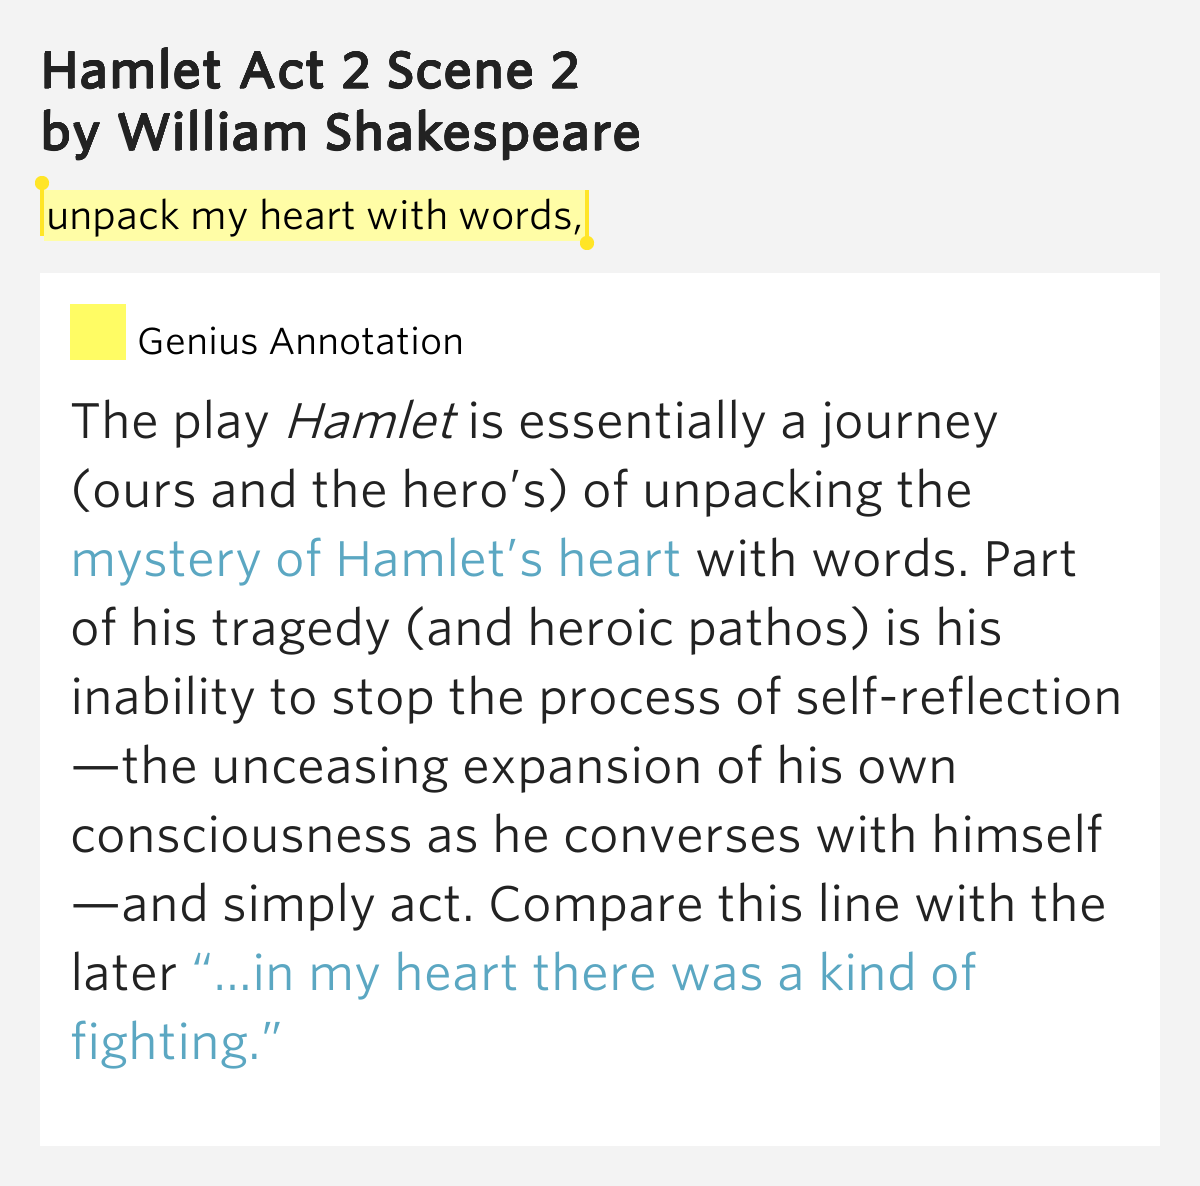 a comparison of hamlet and his foils in the play hamlet by william shakespeare The writers of hamlet and the wars, william shakespeare and timothy findley respectively, transform their main characters from the expected war hero or powerful prince into that of an antihero william shakespeare presents hamlet as a prince bent on revenge but unwilling to do it.